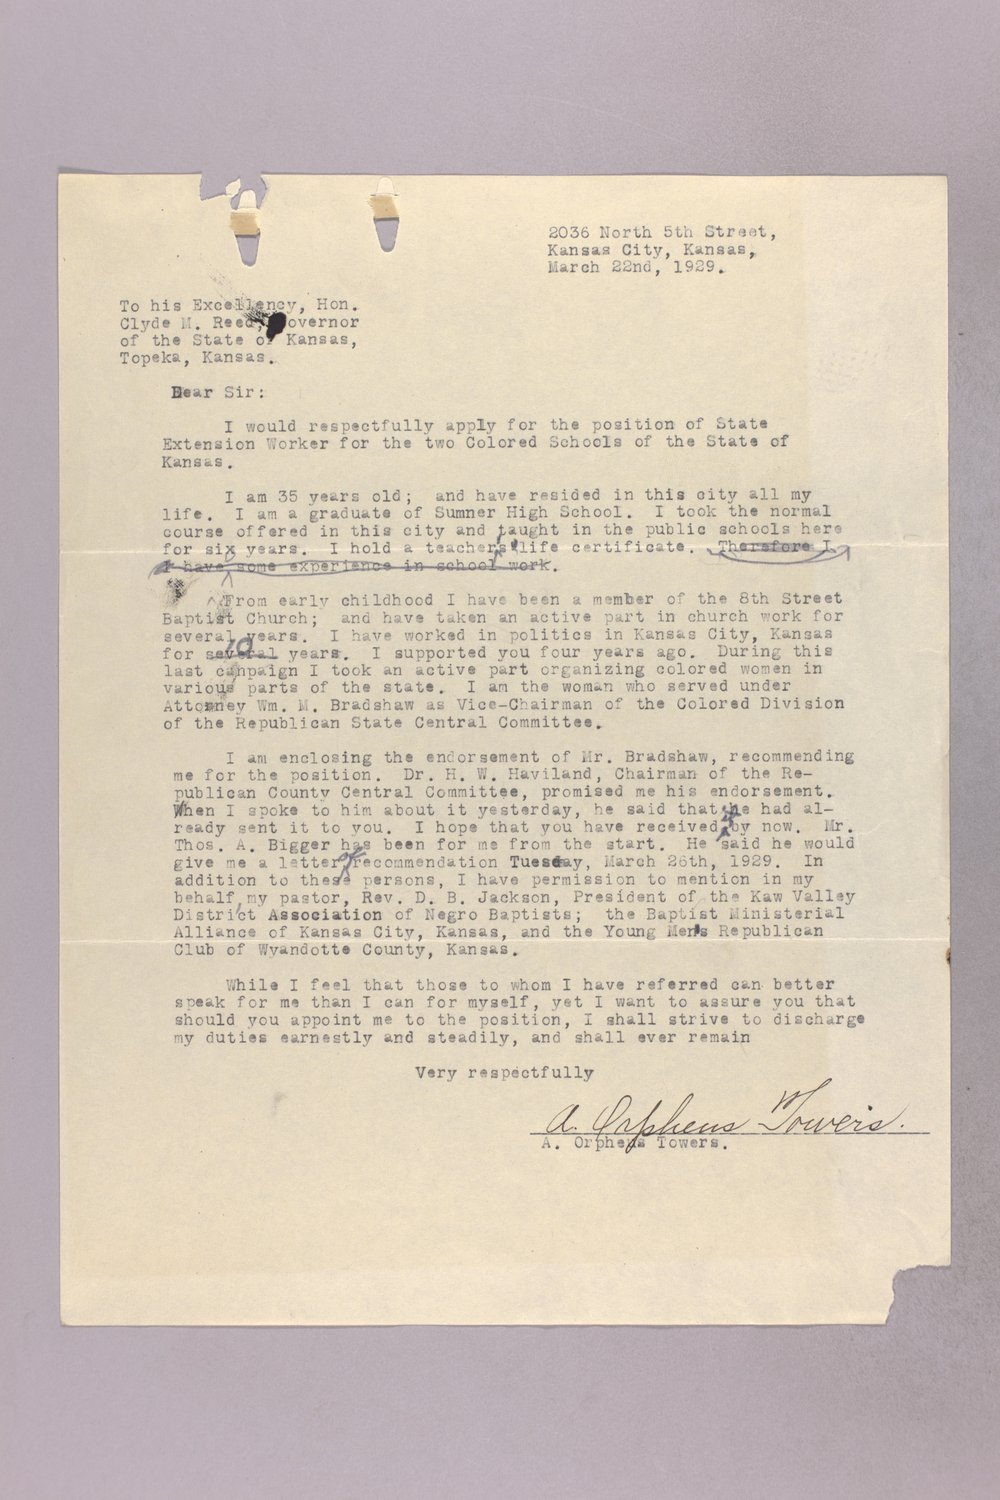 Governor Clyde M. Reed correspondence, vocational school applications - 10